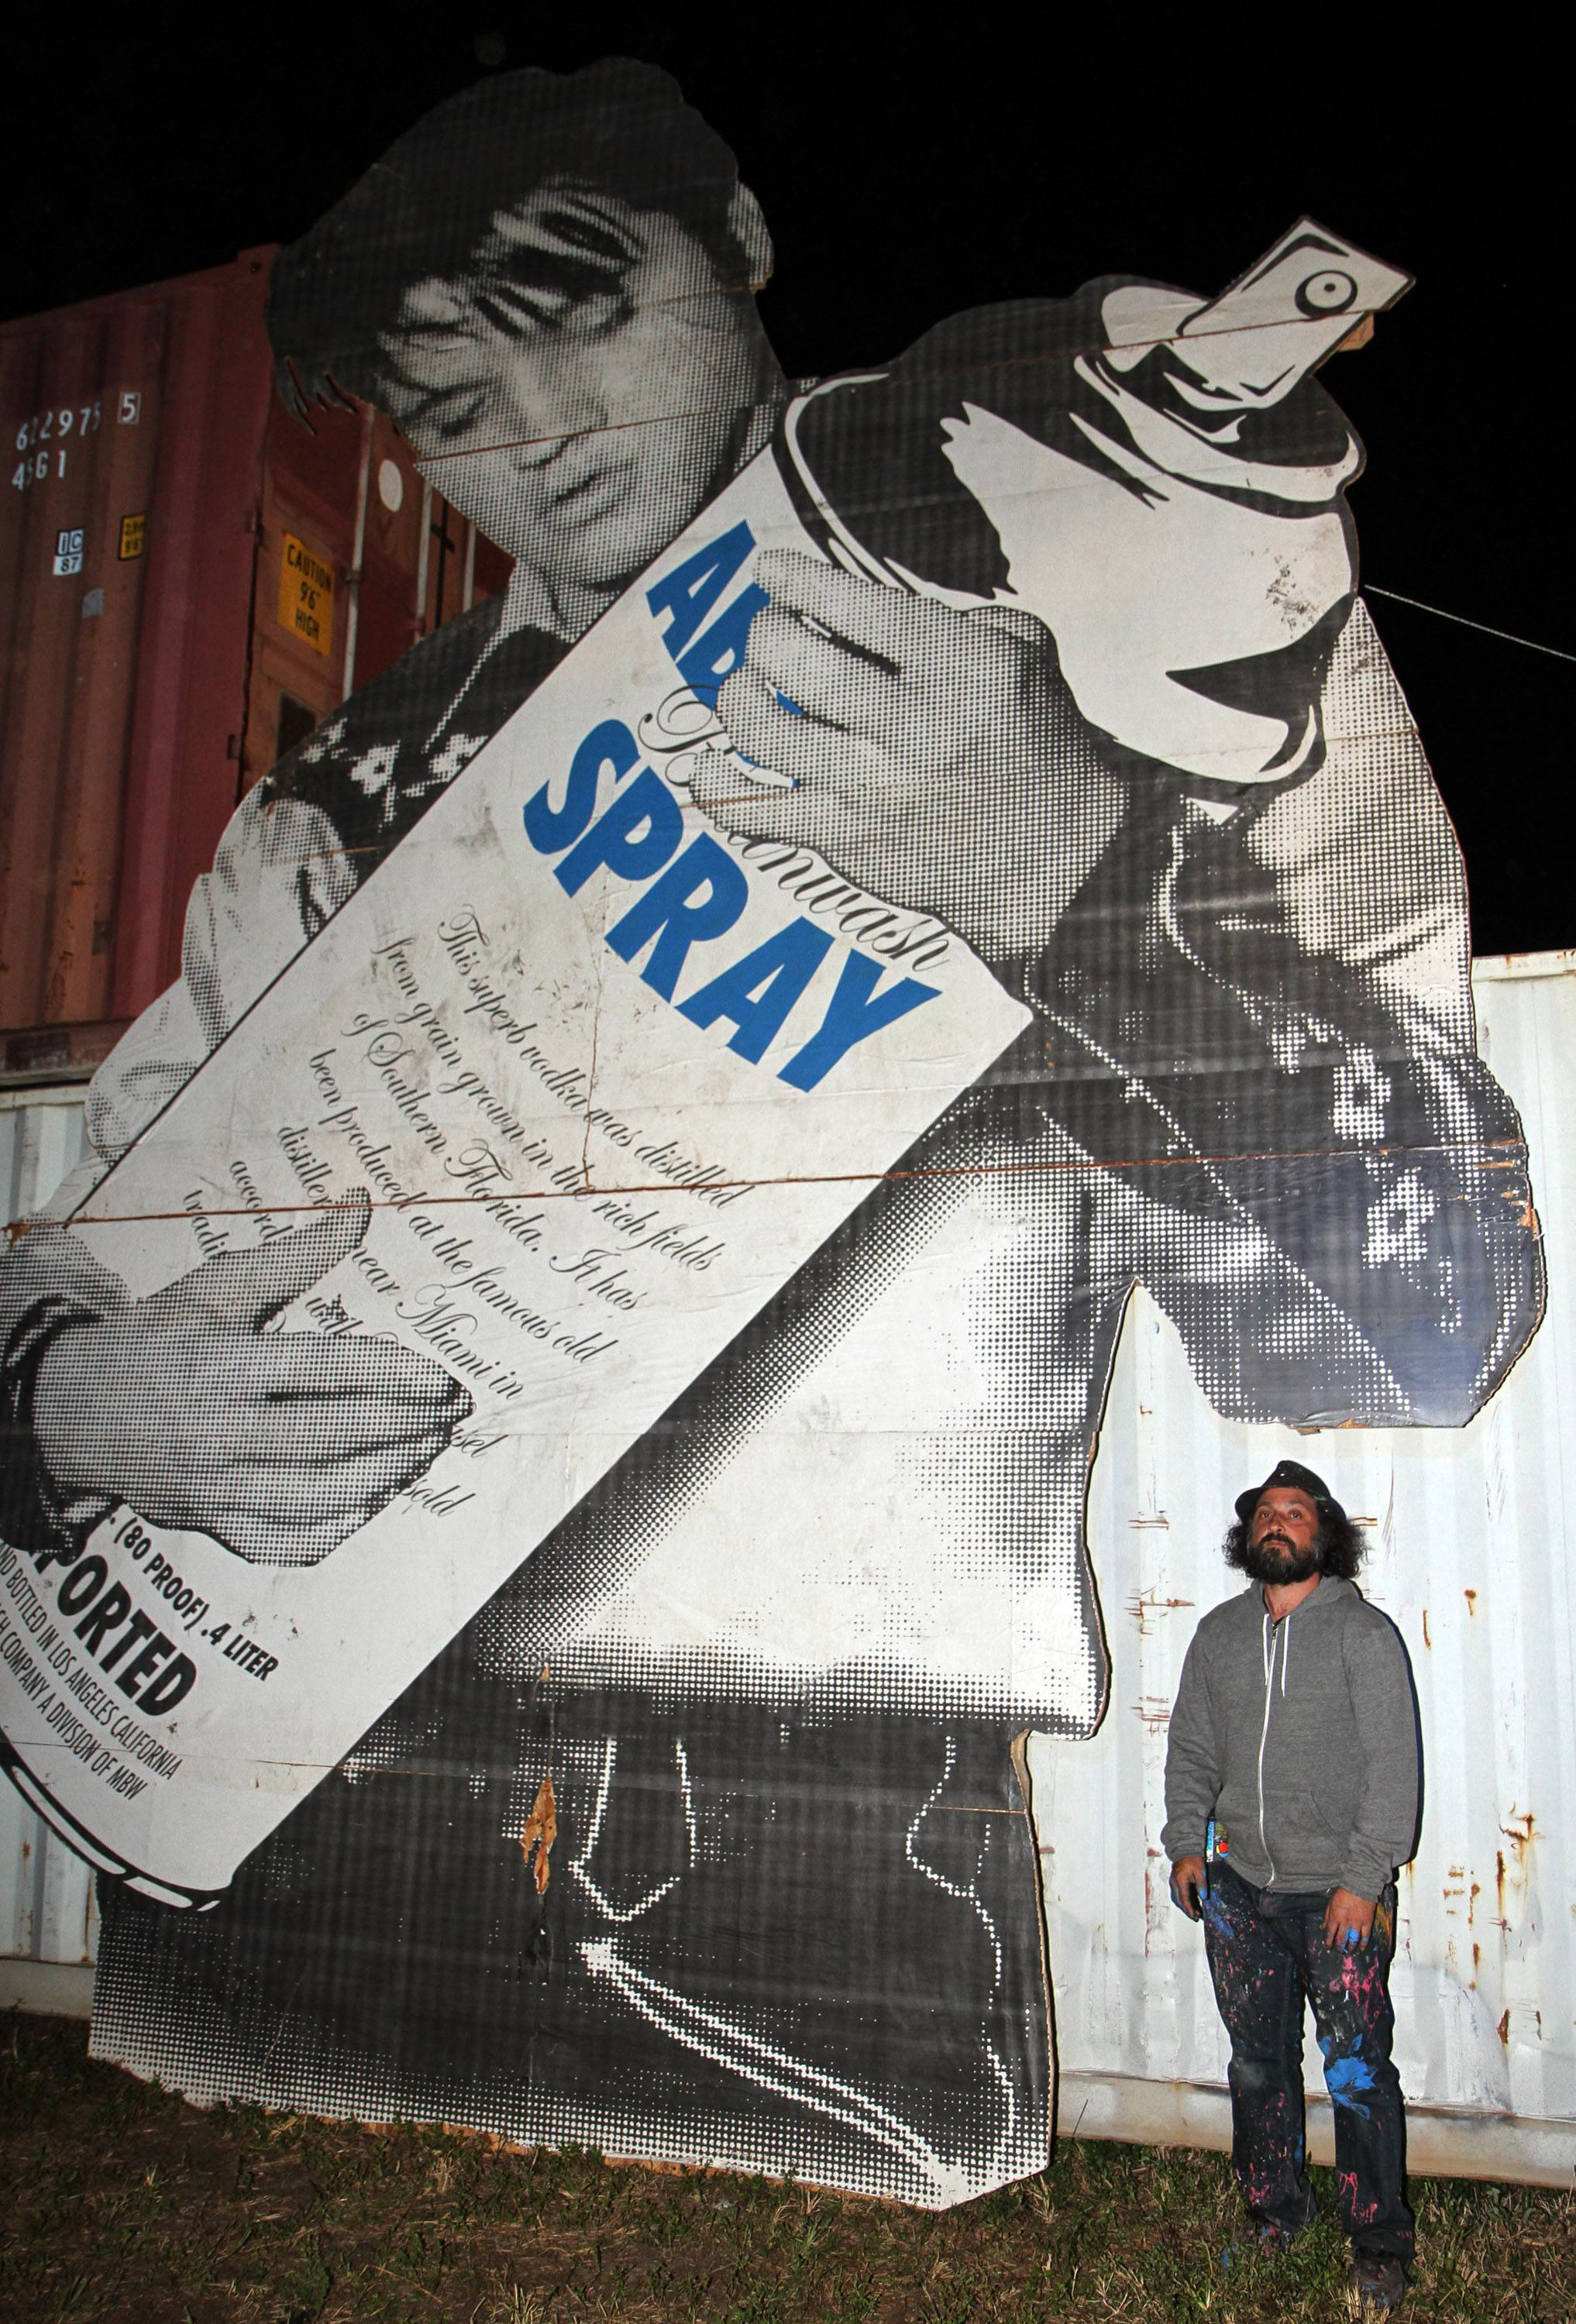 Art Basel: Mr. Brainwash Collaborates With ABSOLUT Vodka